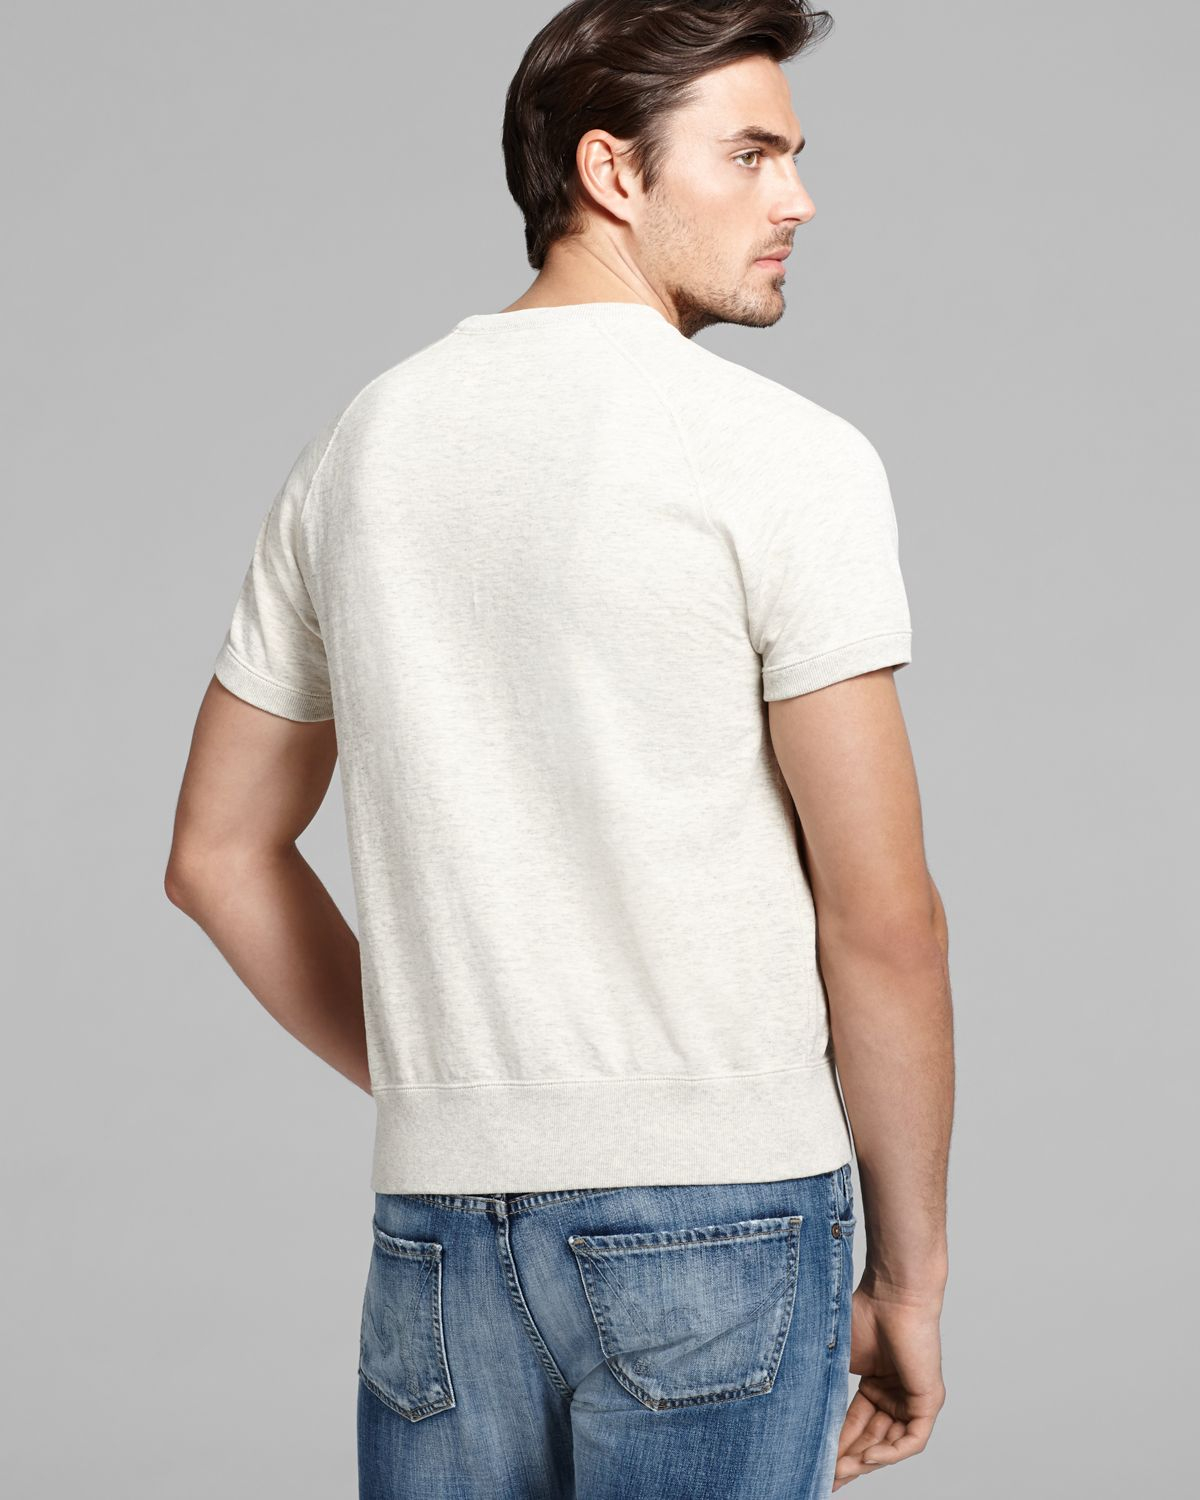 Todd snyder Short Sleeve Sweatshirt in Natural for Men | Lyst